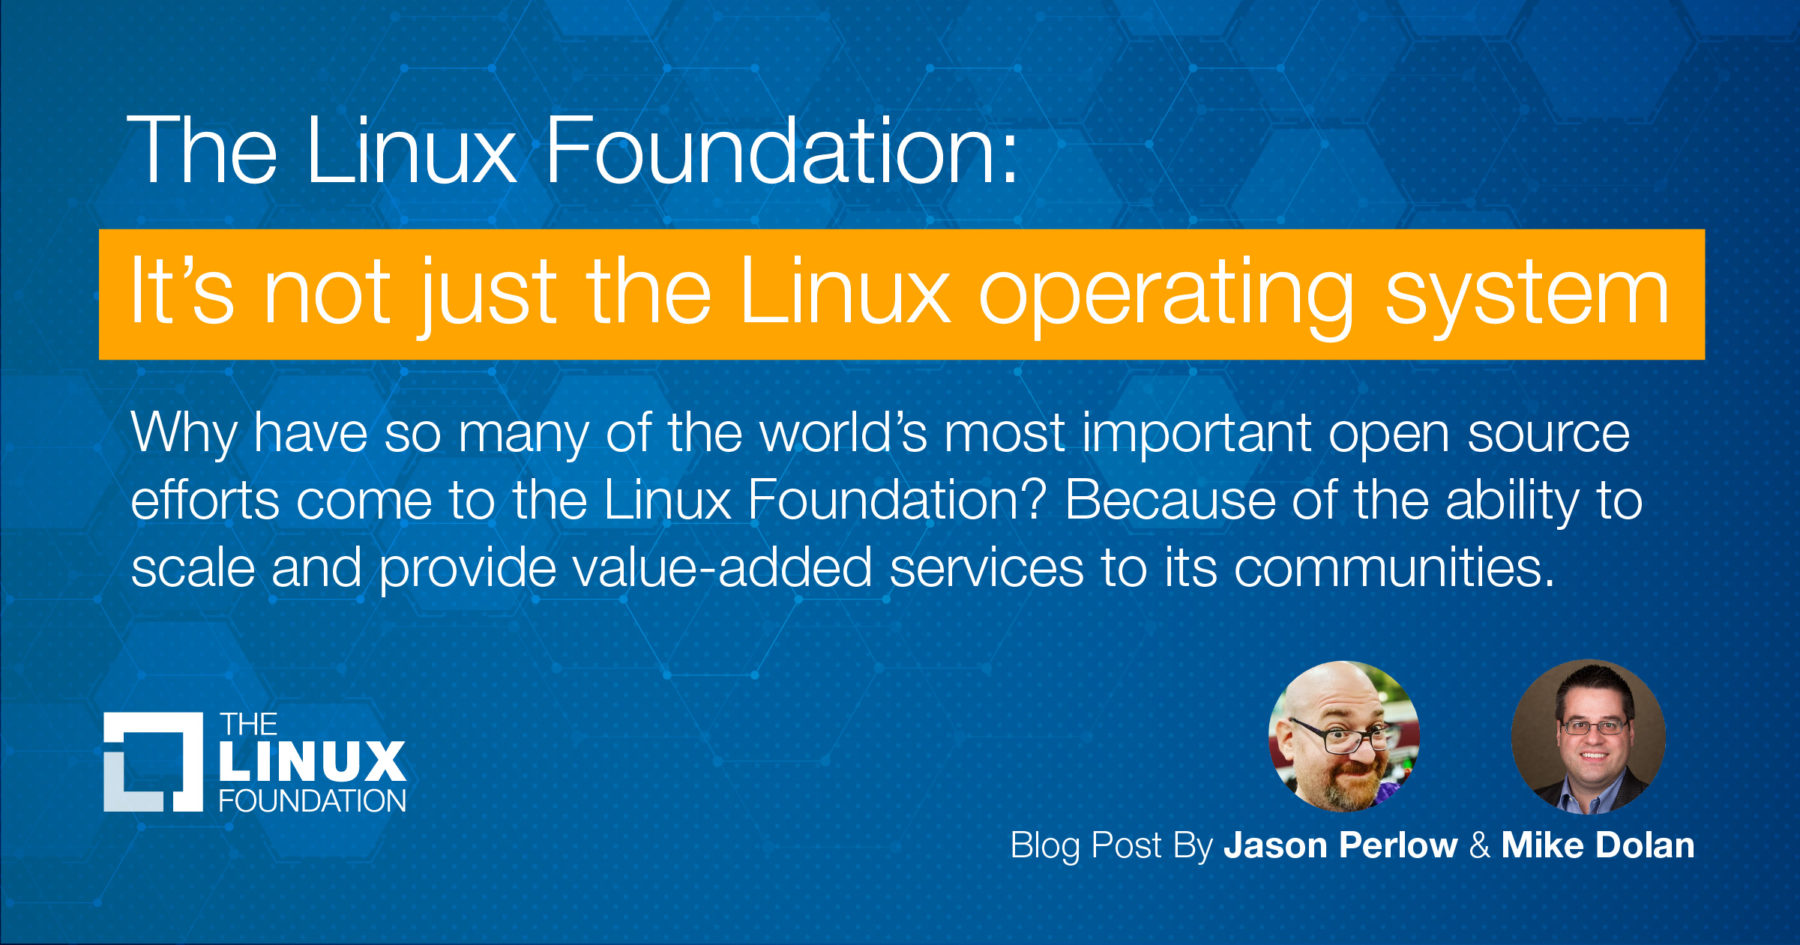 The Linux Foundation: It's not just the Linux operating system